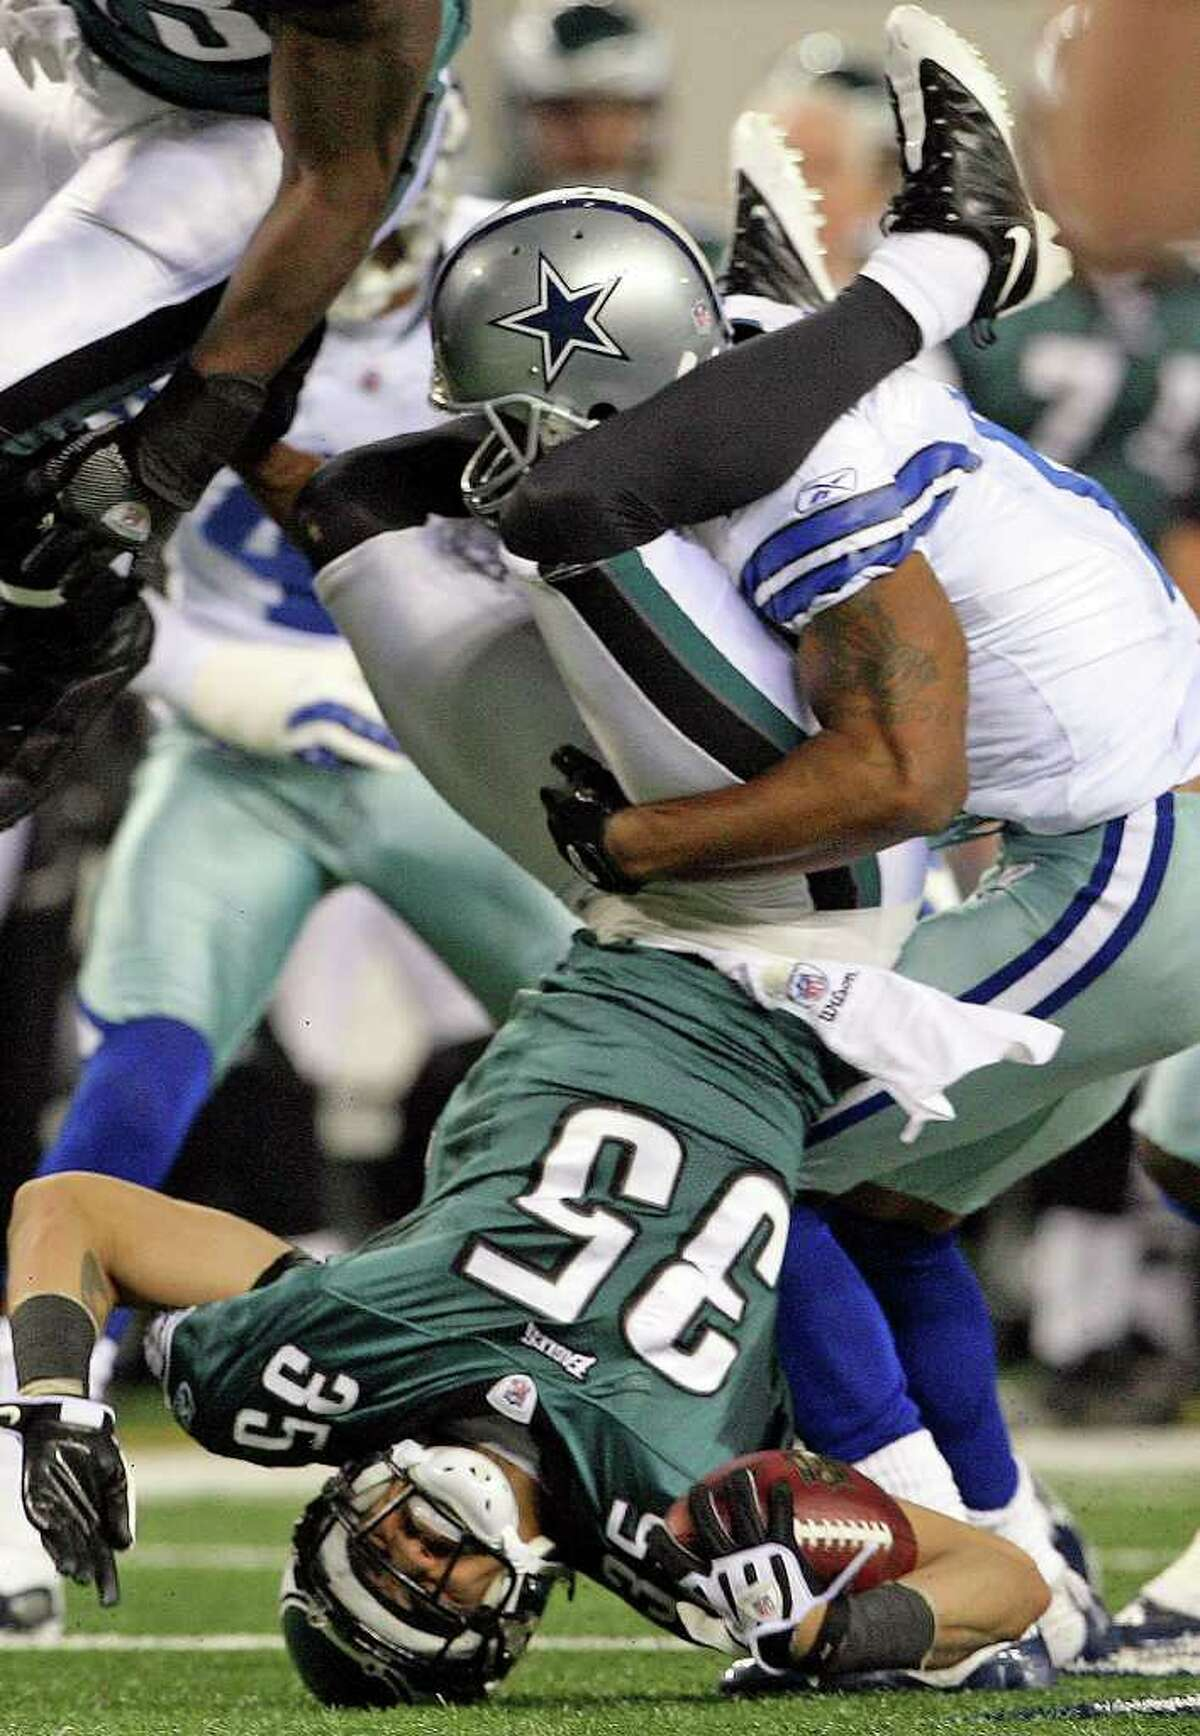 SPORTS Eagles return specialist Macho Harris gets upended on a kickoff return as the Dallas Cowboys play the Philadelphia Eagles in first round NFL playoff action at Dallas on January 9, 2010. Tom Reel/Staff